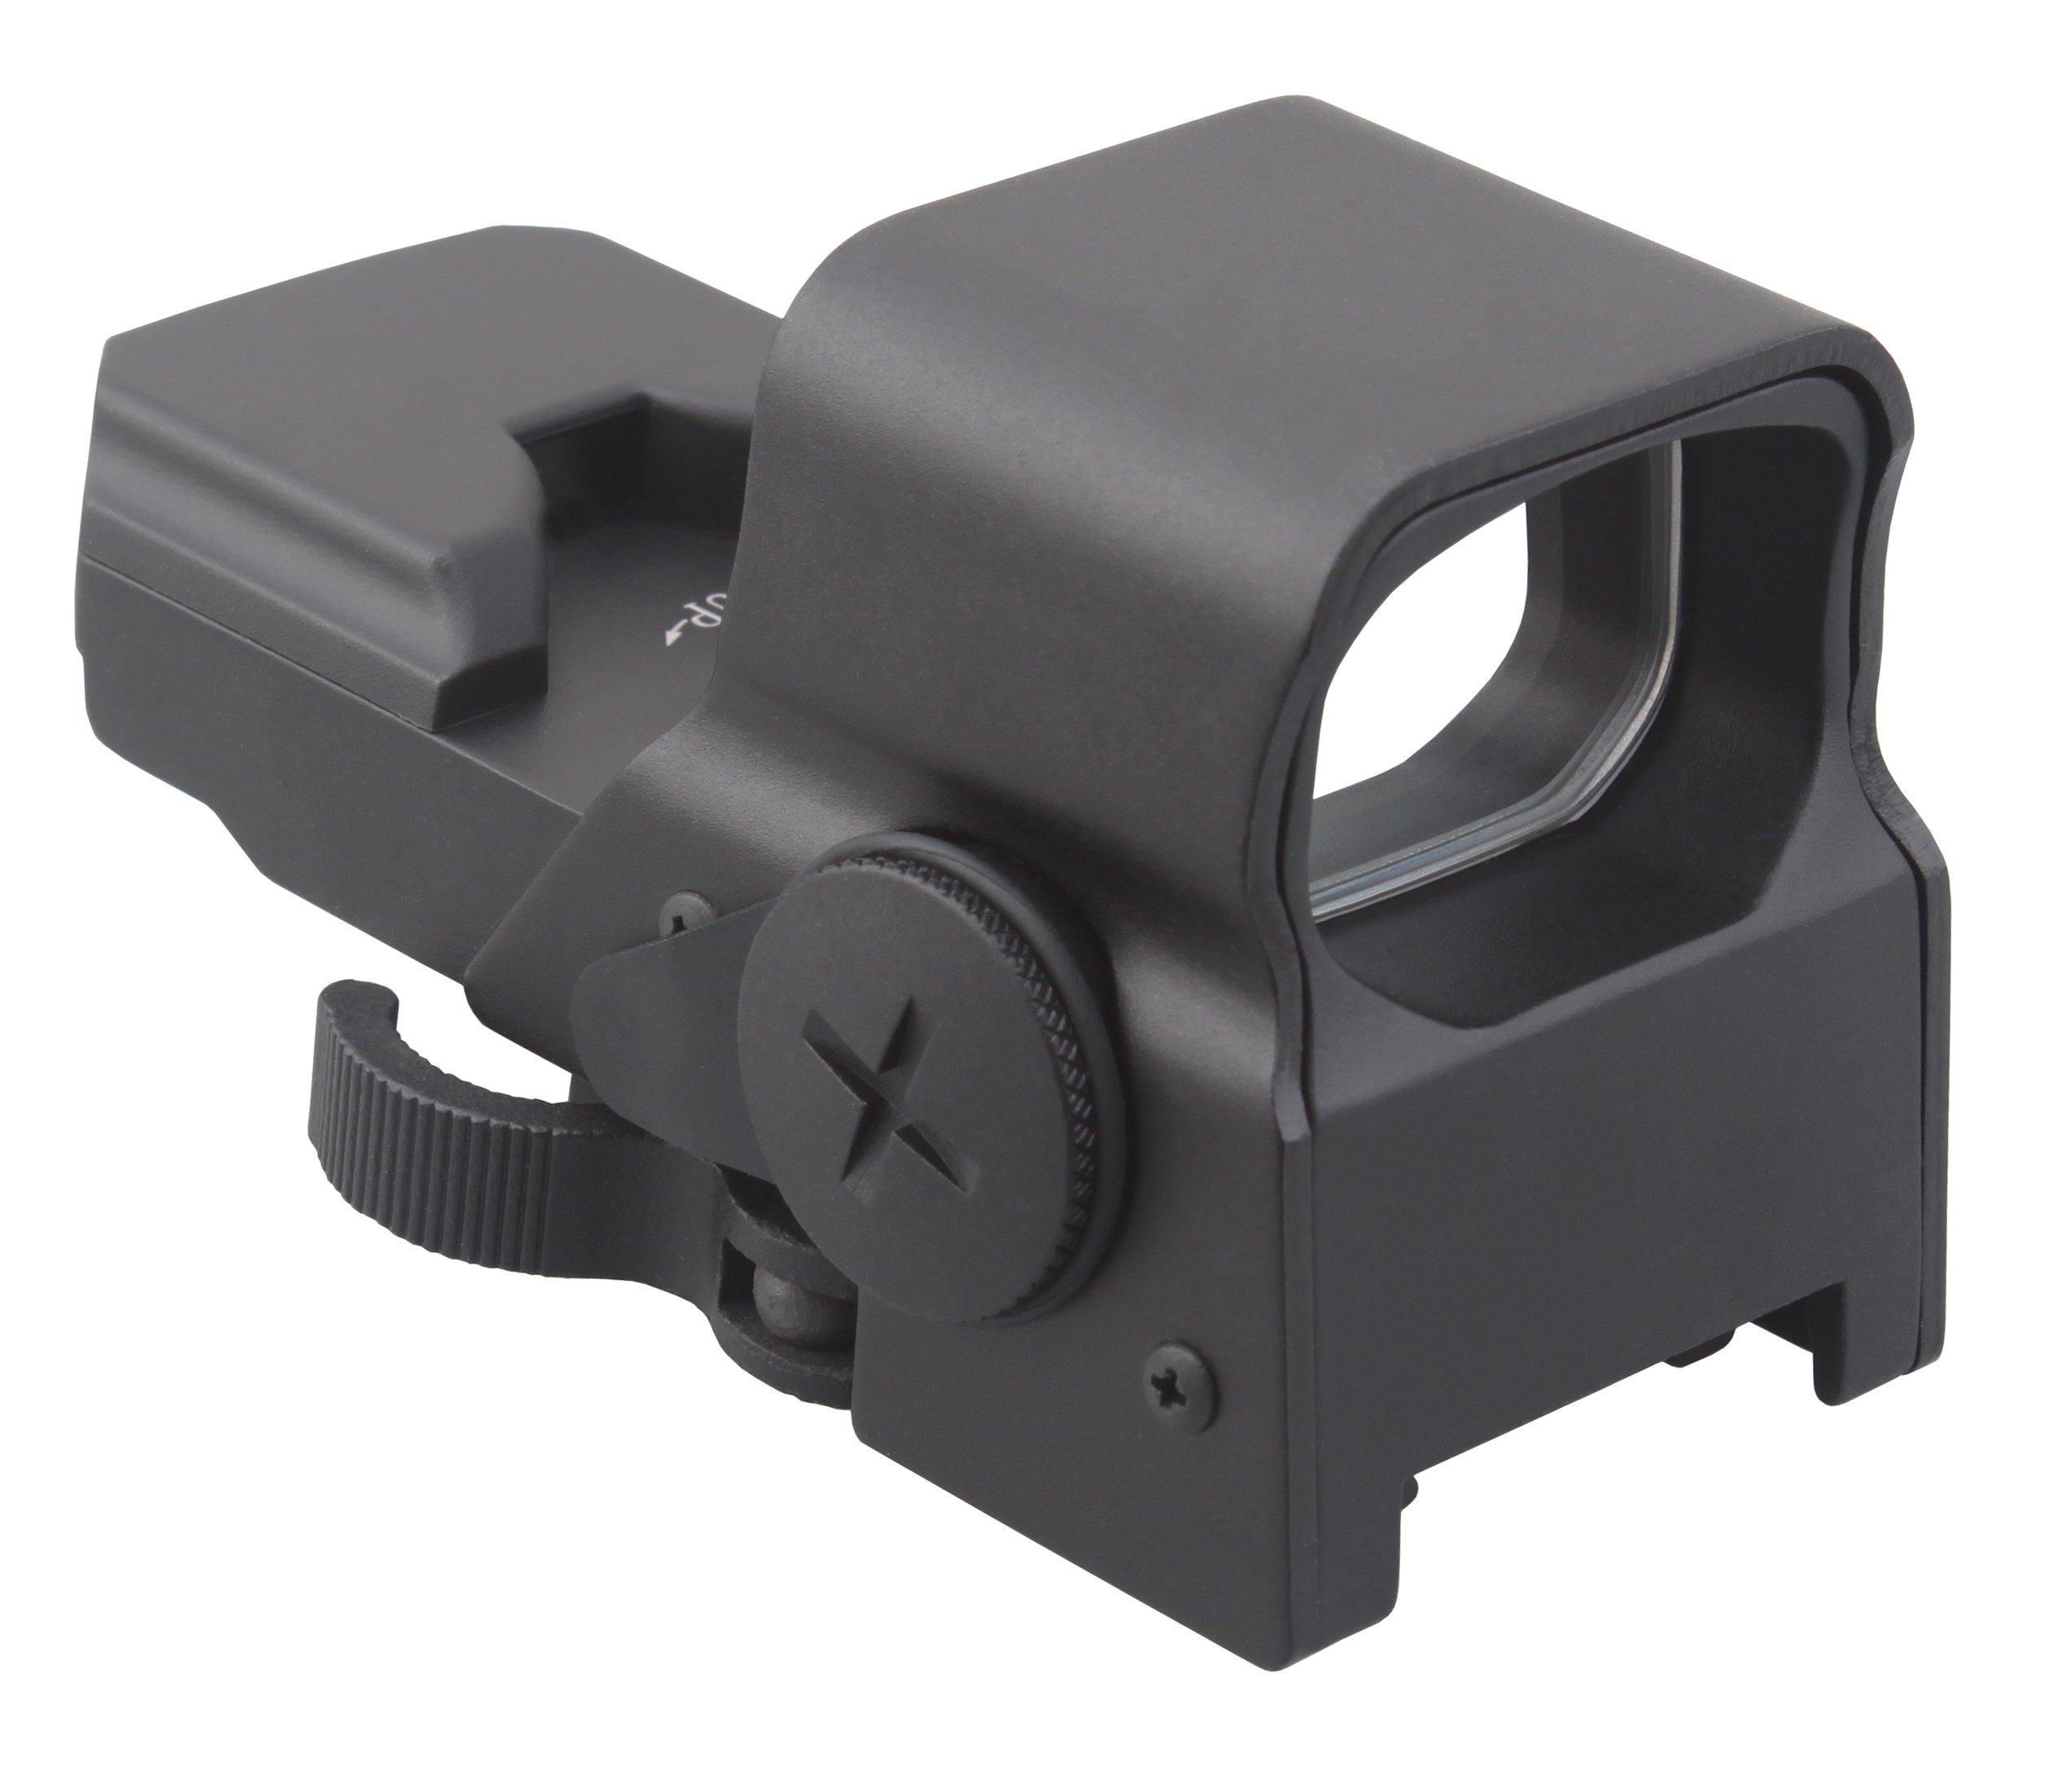 TAC Vector Optics Tactical Reflex 8 Reticle Red Dot Sight Scope High End Quality Color Black